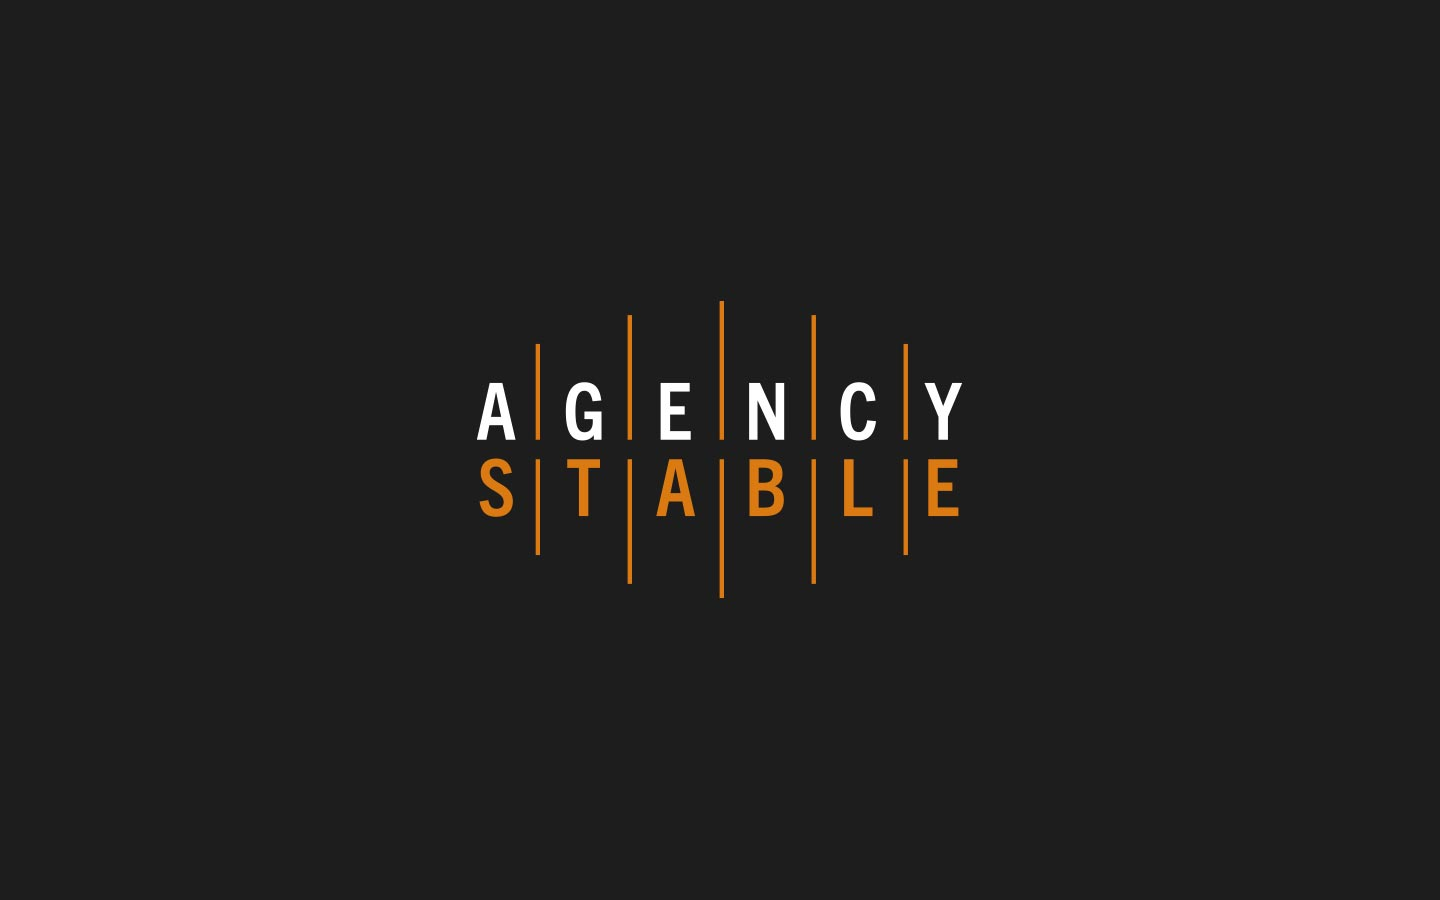 Agency stable logo